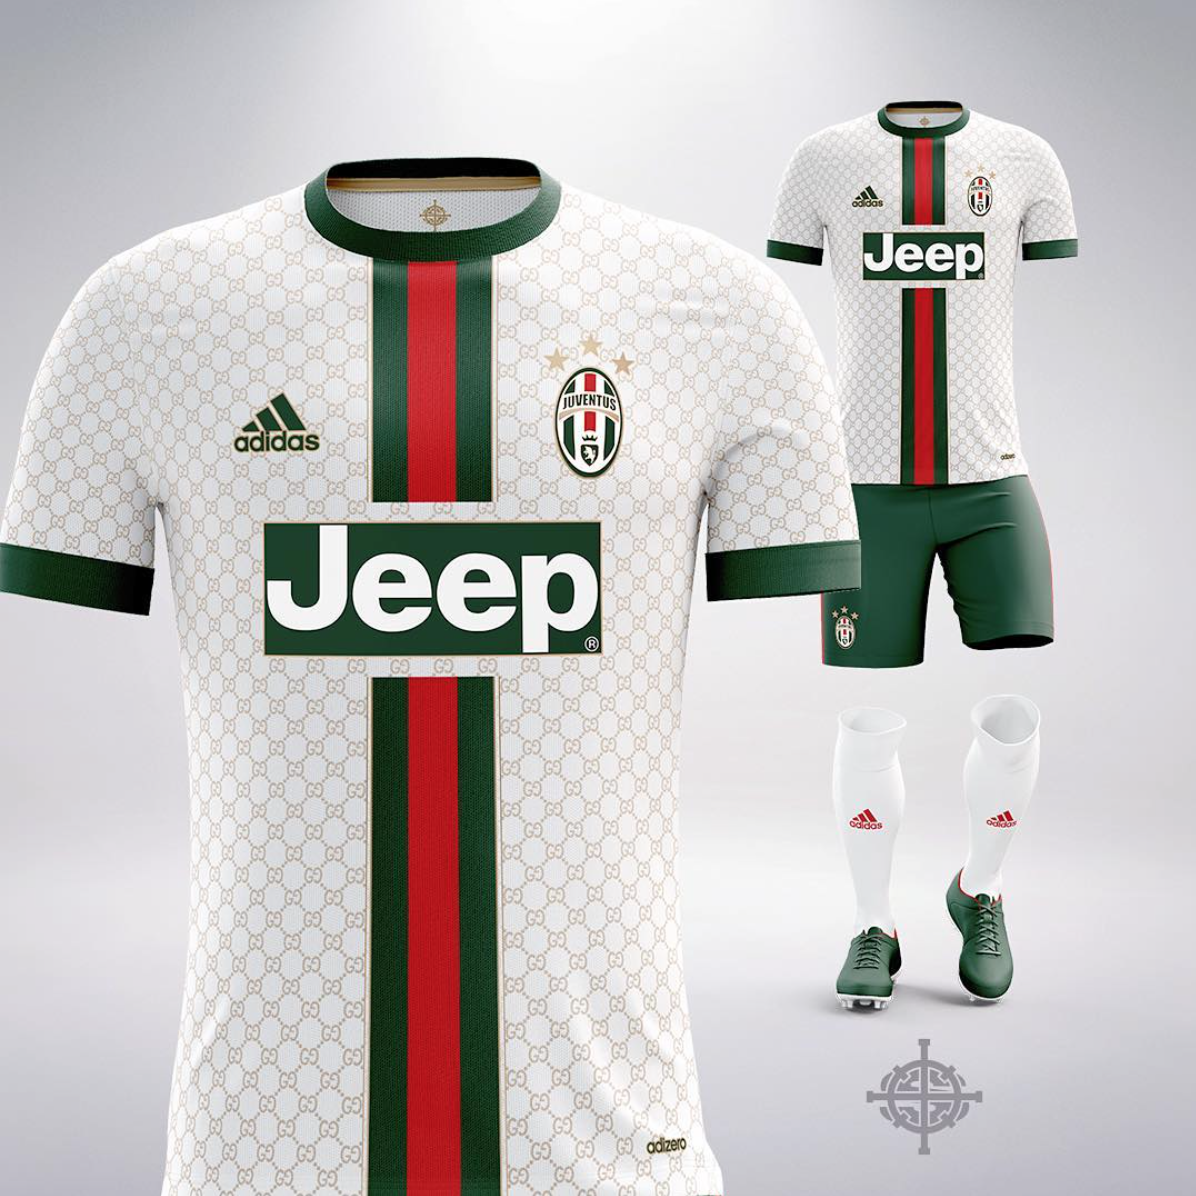 FOOTBALL X LUXE BY MARLON SETTPACE - Juventus x Gucci Sports Team Apparel adddb270b